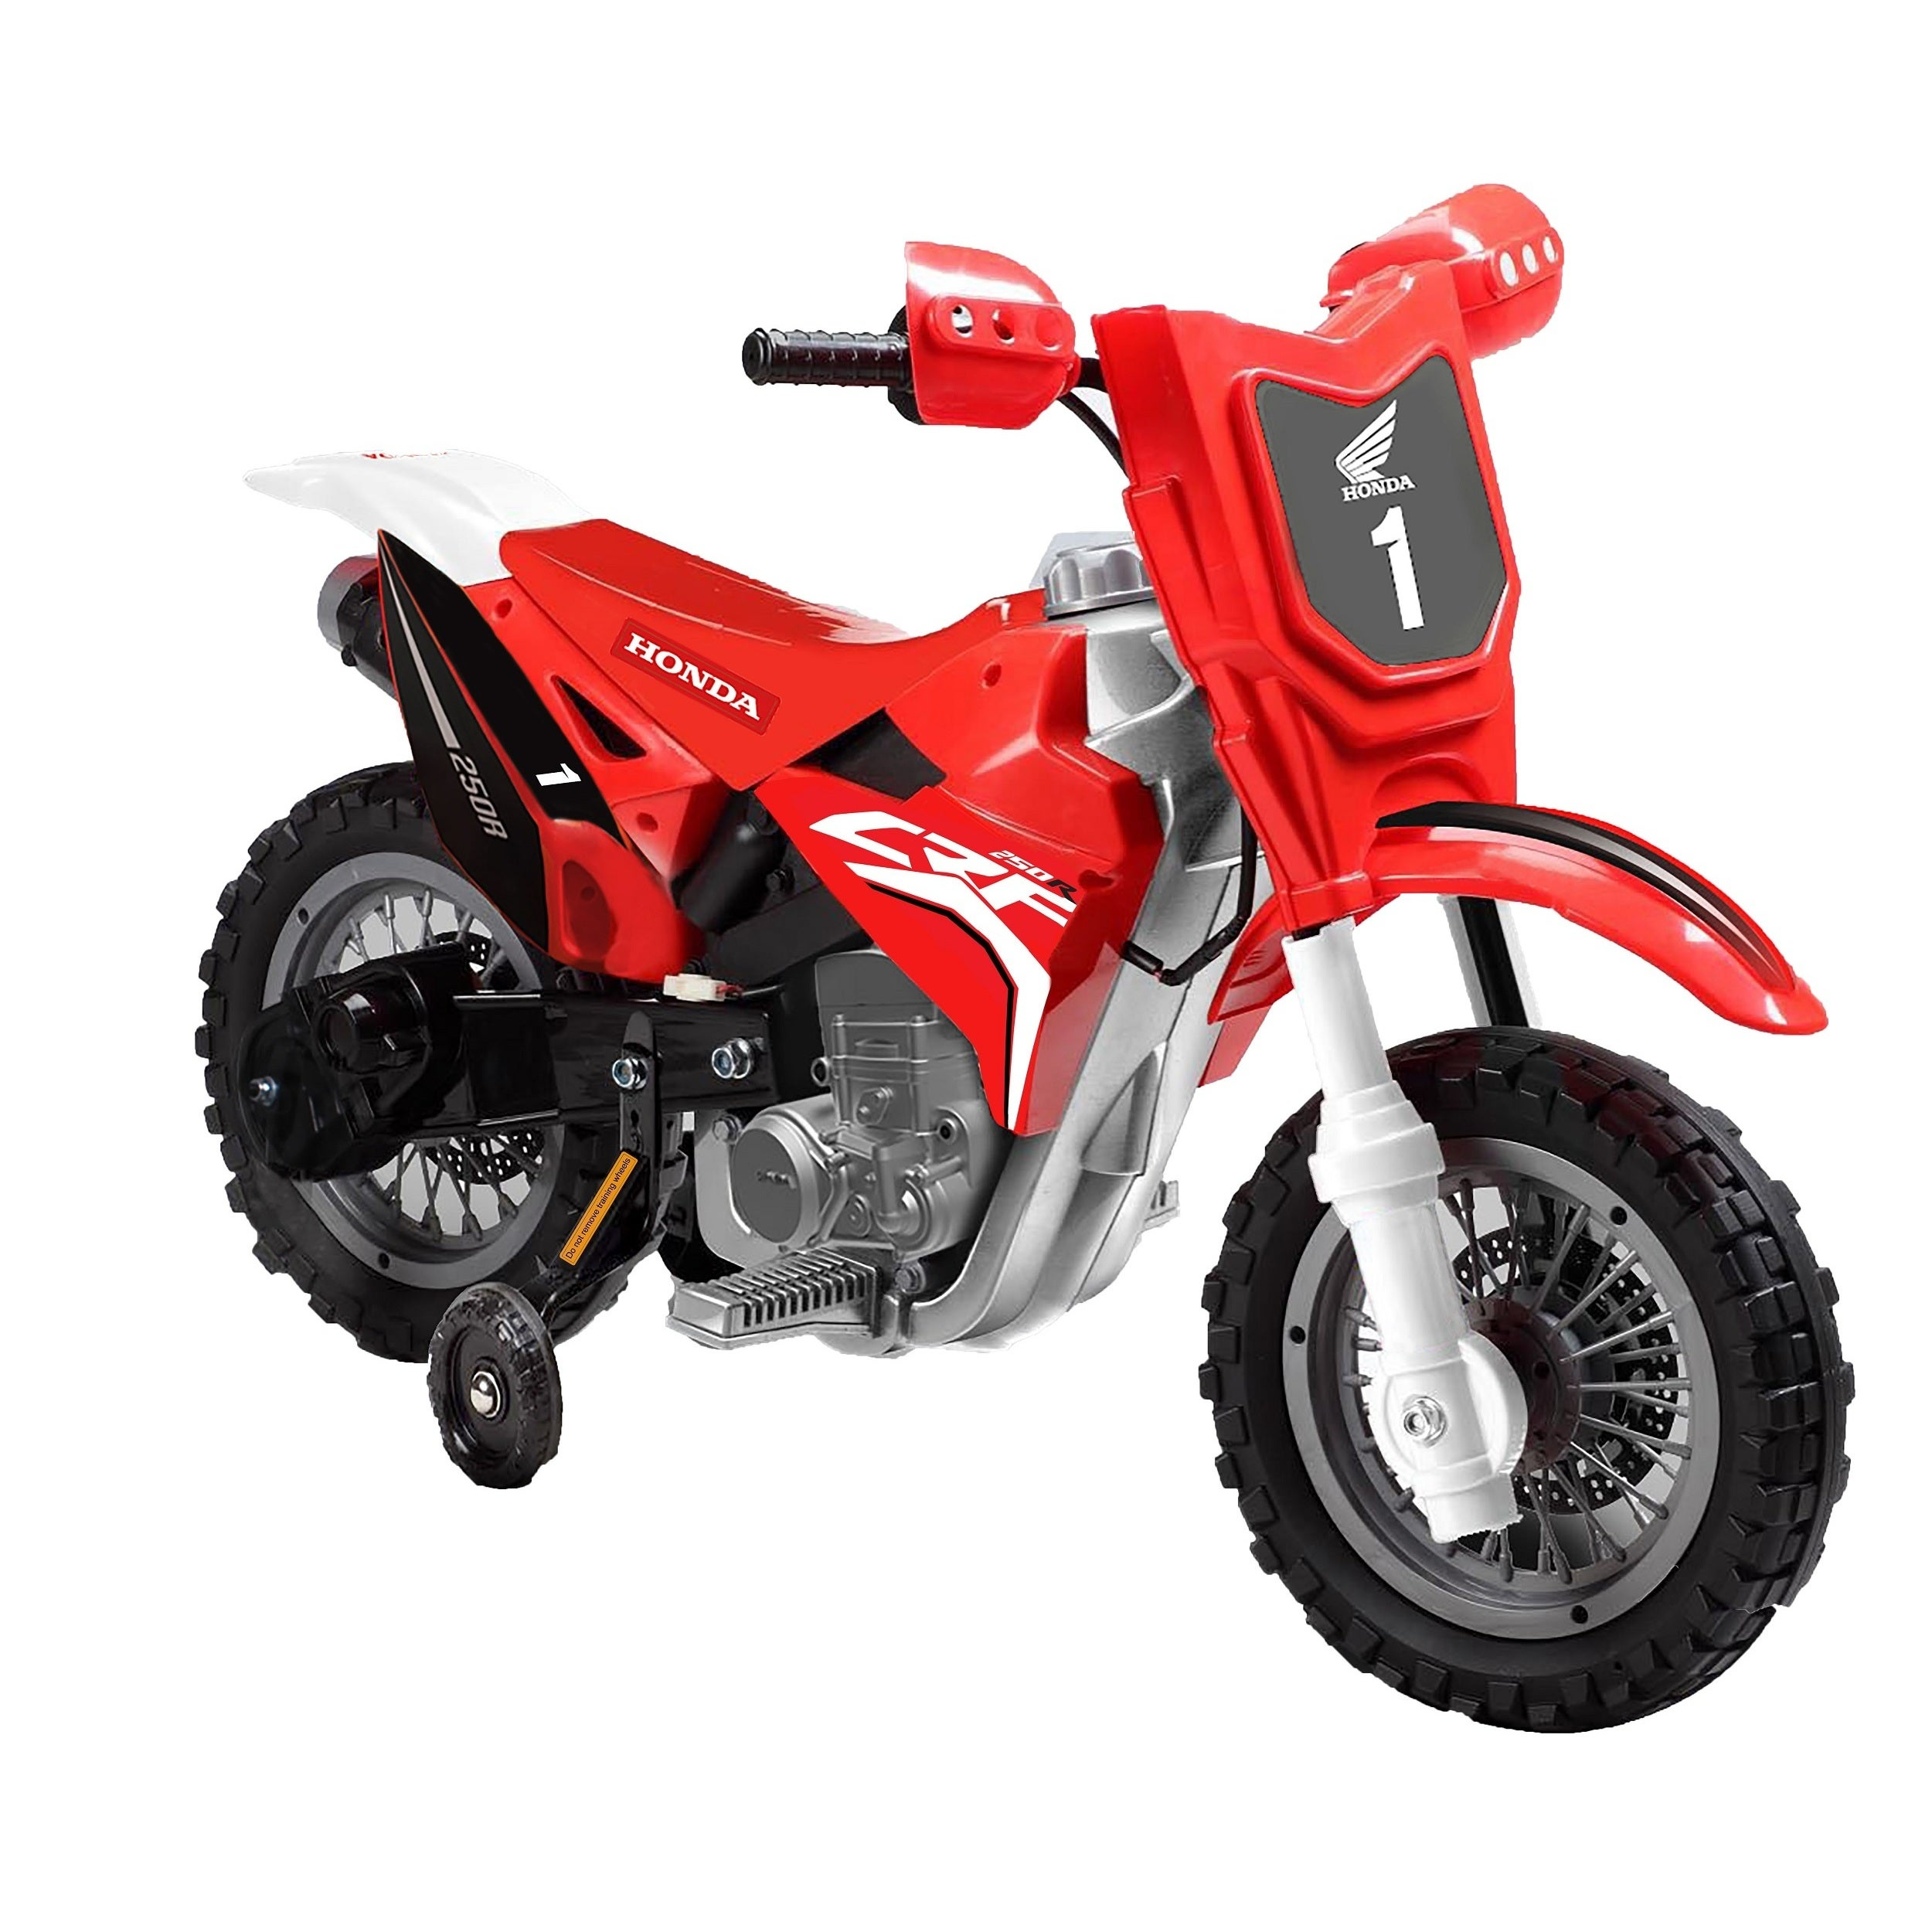 Buy Powered Riding Toys Online at Overstock | Our Best Bicycles